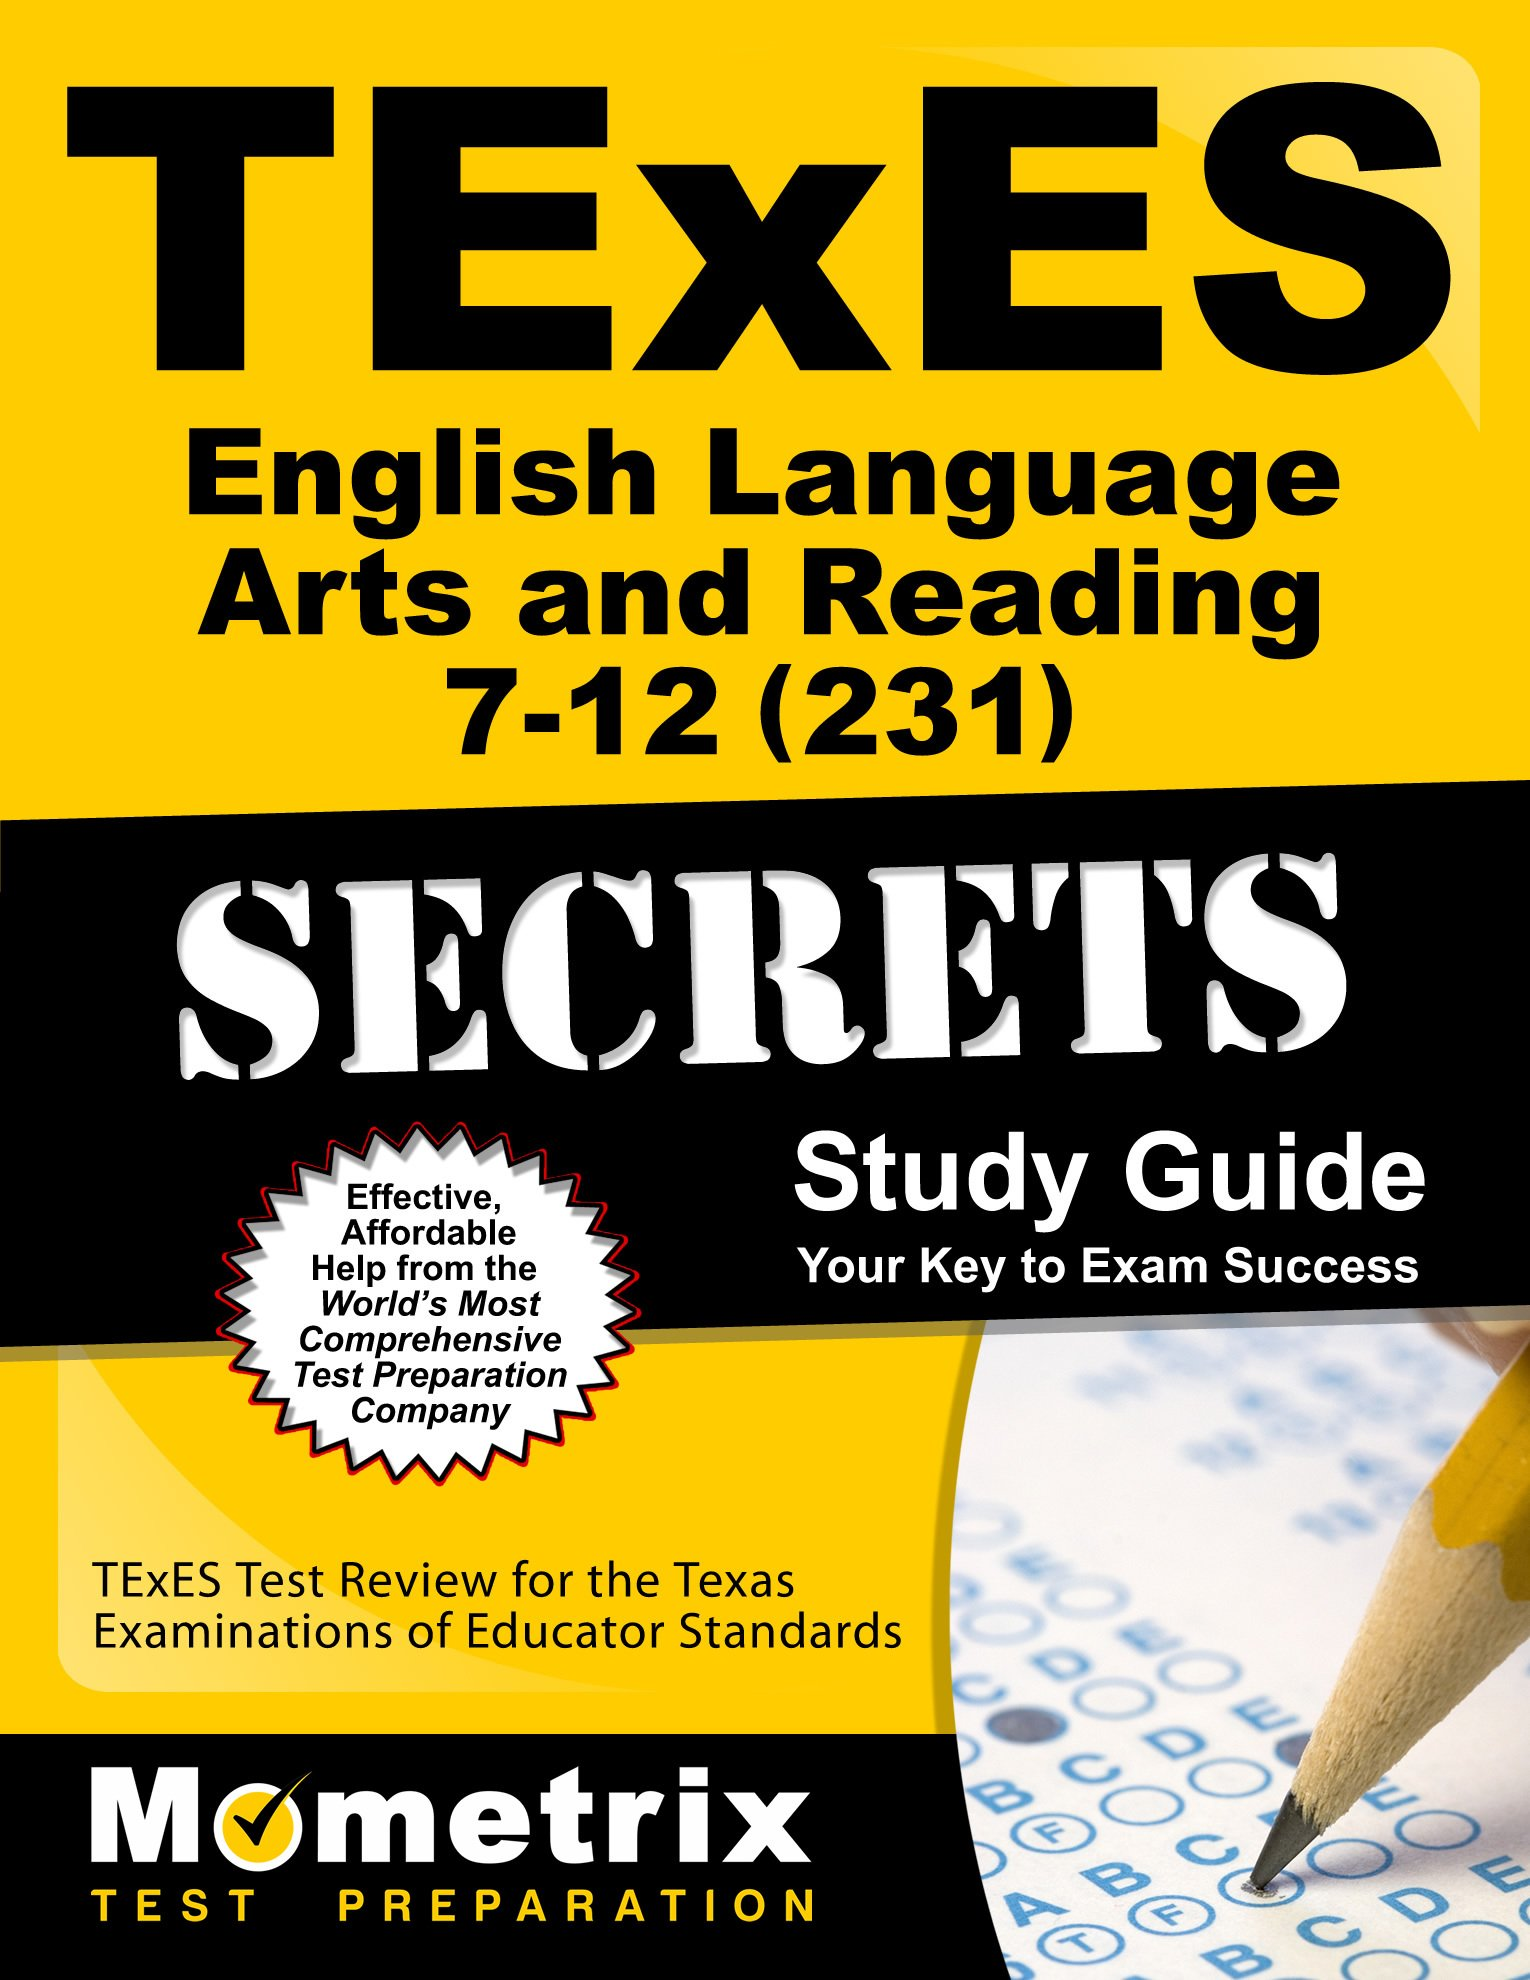 TExES English Language Arts and Reading 7-12 (231) Secrets Study Guide: TExES Test Review for the Texas Examinations of Educator Standards (Secrets (Mometrix))